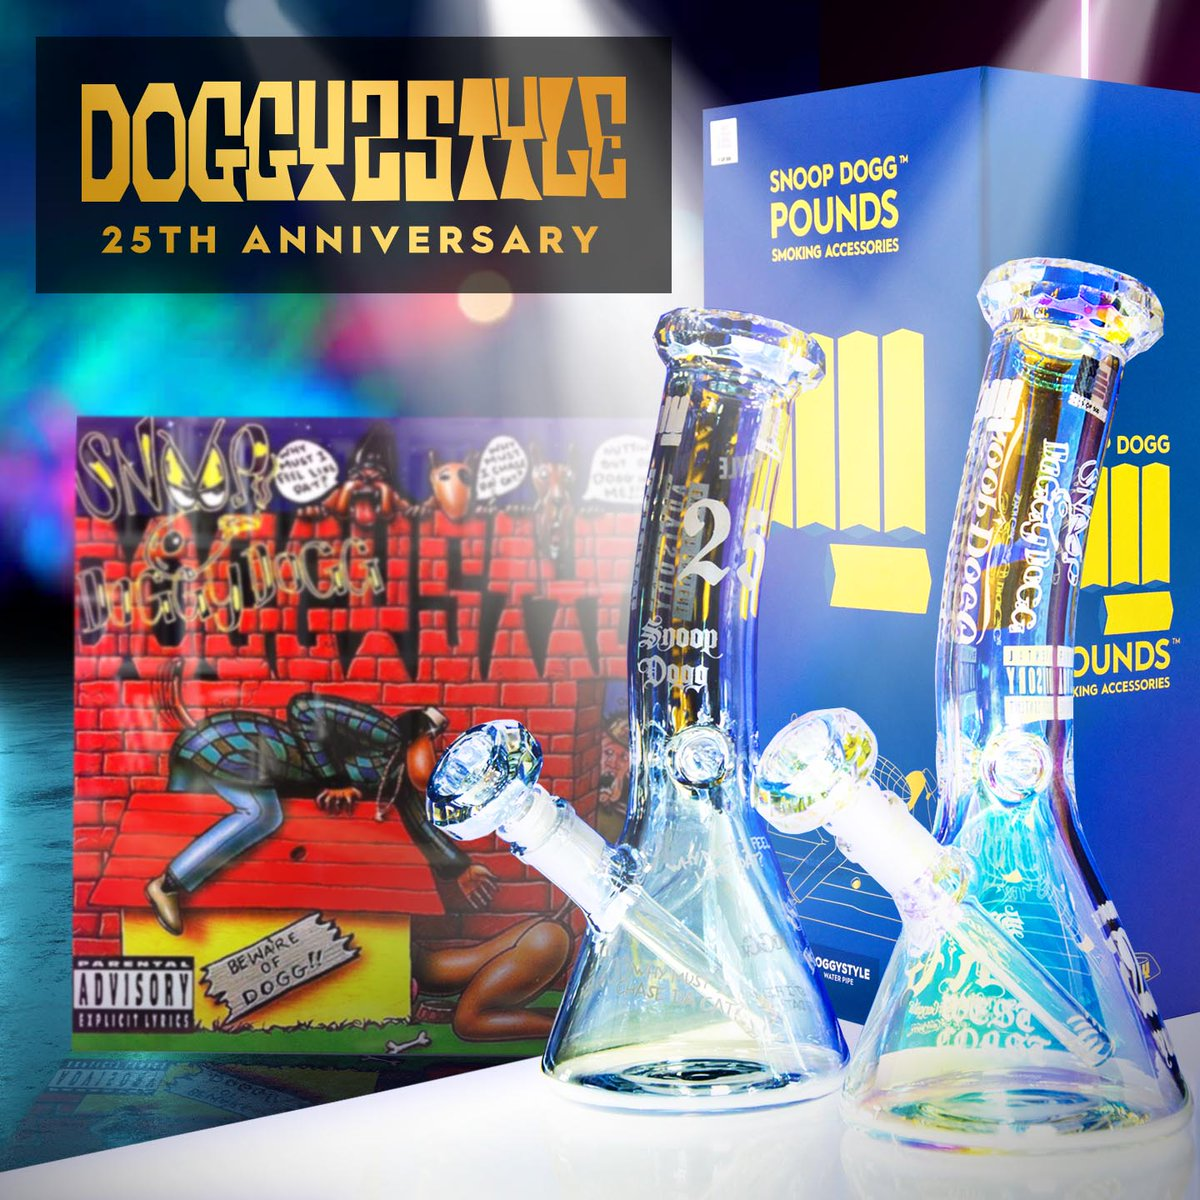 brand new Doggystyle edition of my @smokingPOUNDS products 🔥 celebrate 25 yrs of the album n light one up, it has the extra large bowl for extra large smoke 💨💨 only 500 of each color for sale, so make sure u cop it quick !